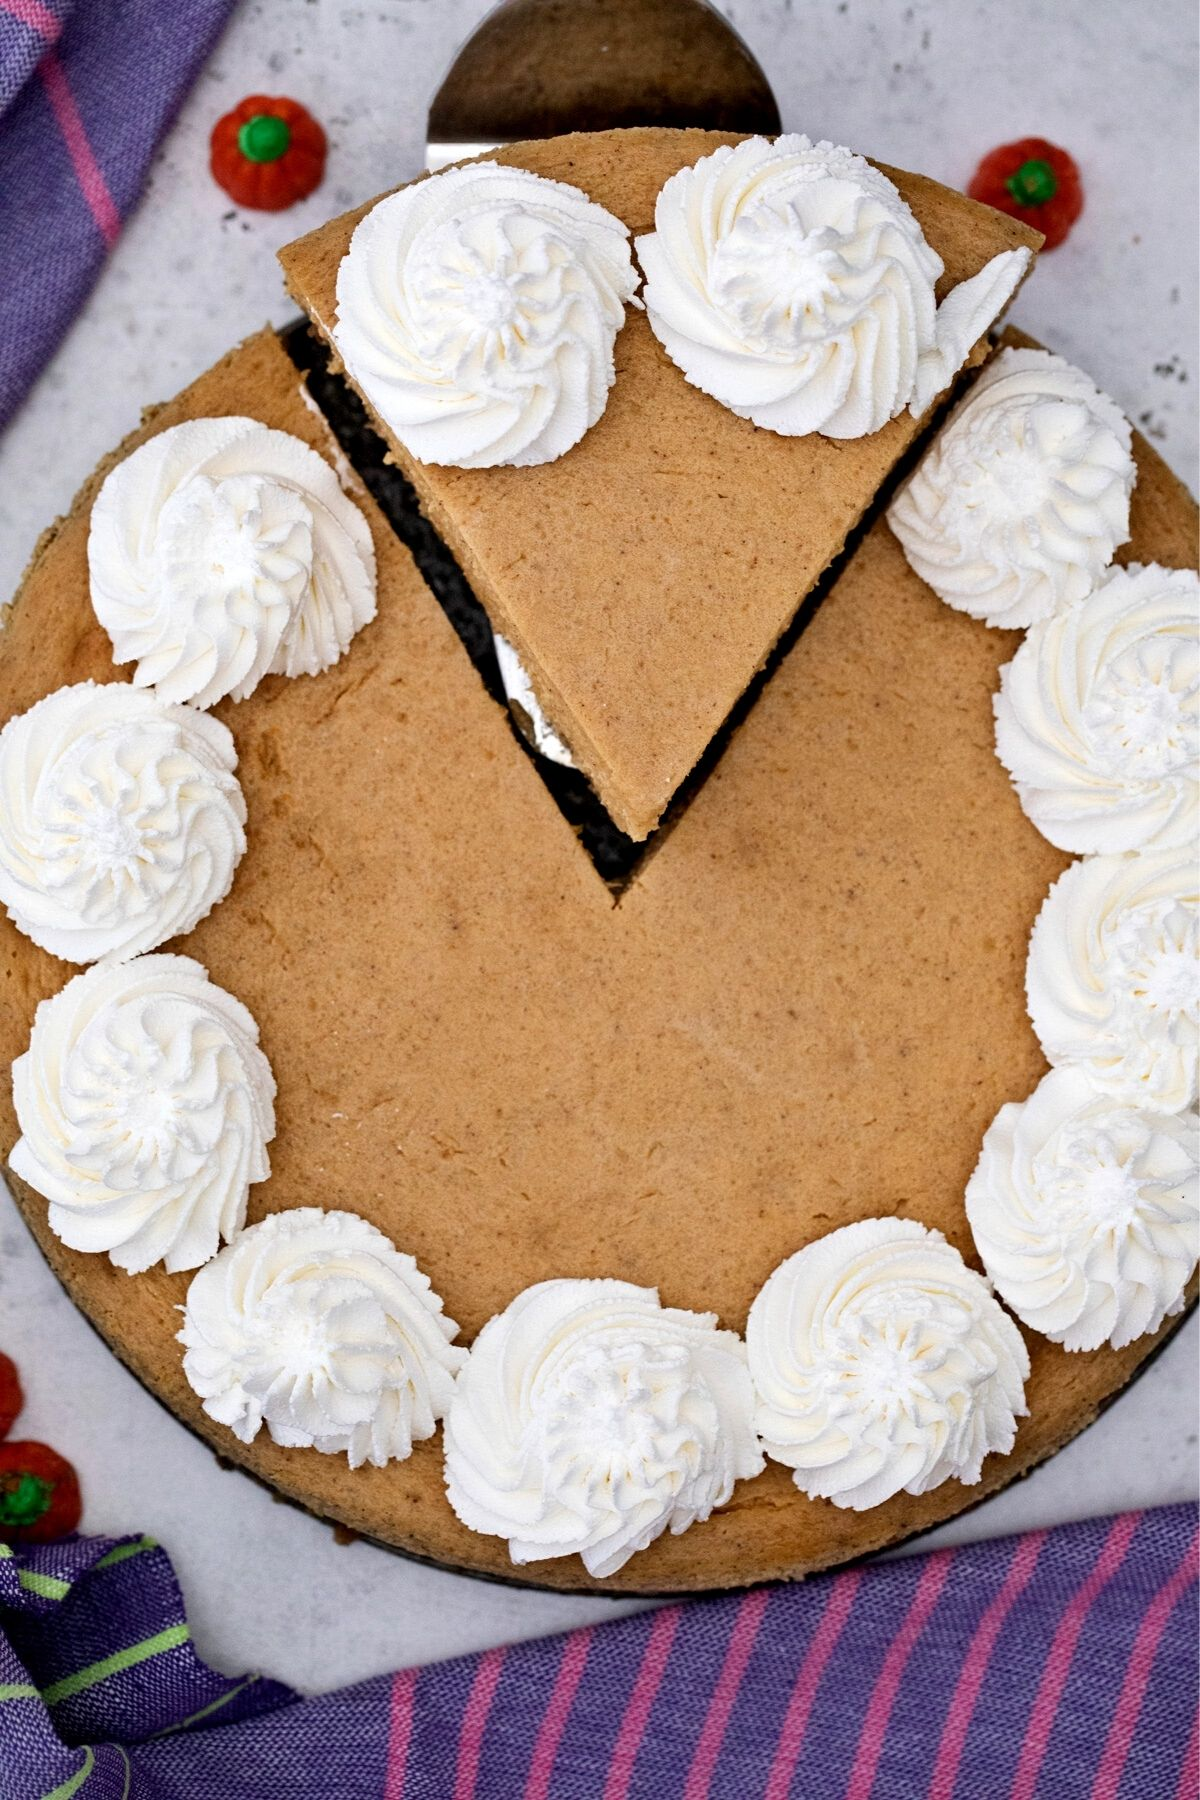 Whole cheesecake with whipped topping dollops and slice cut out